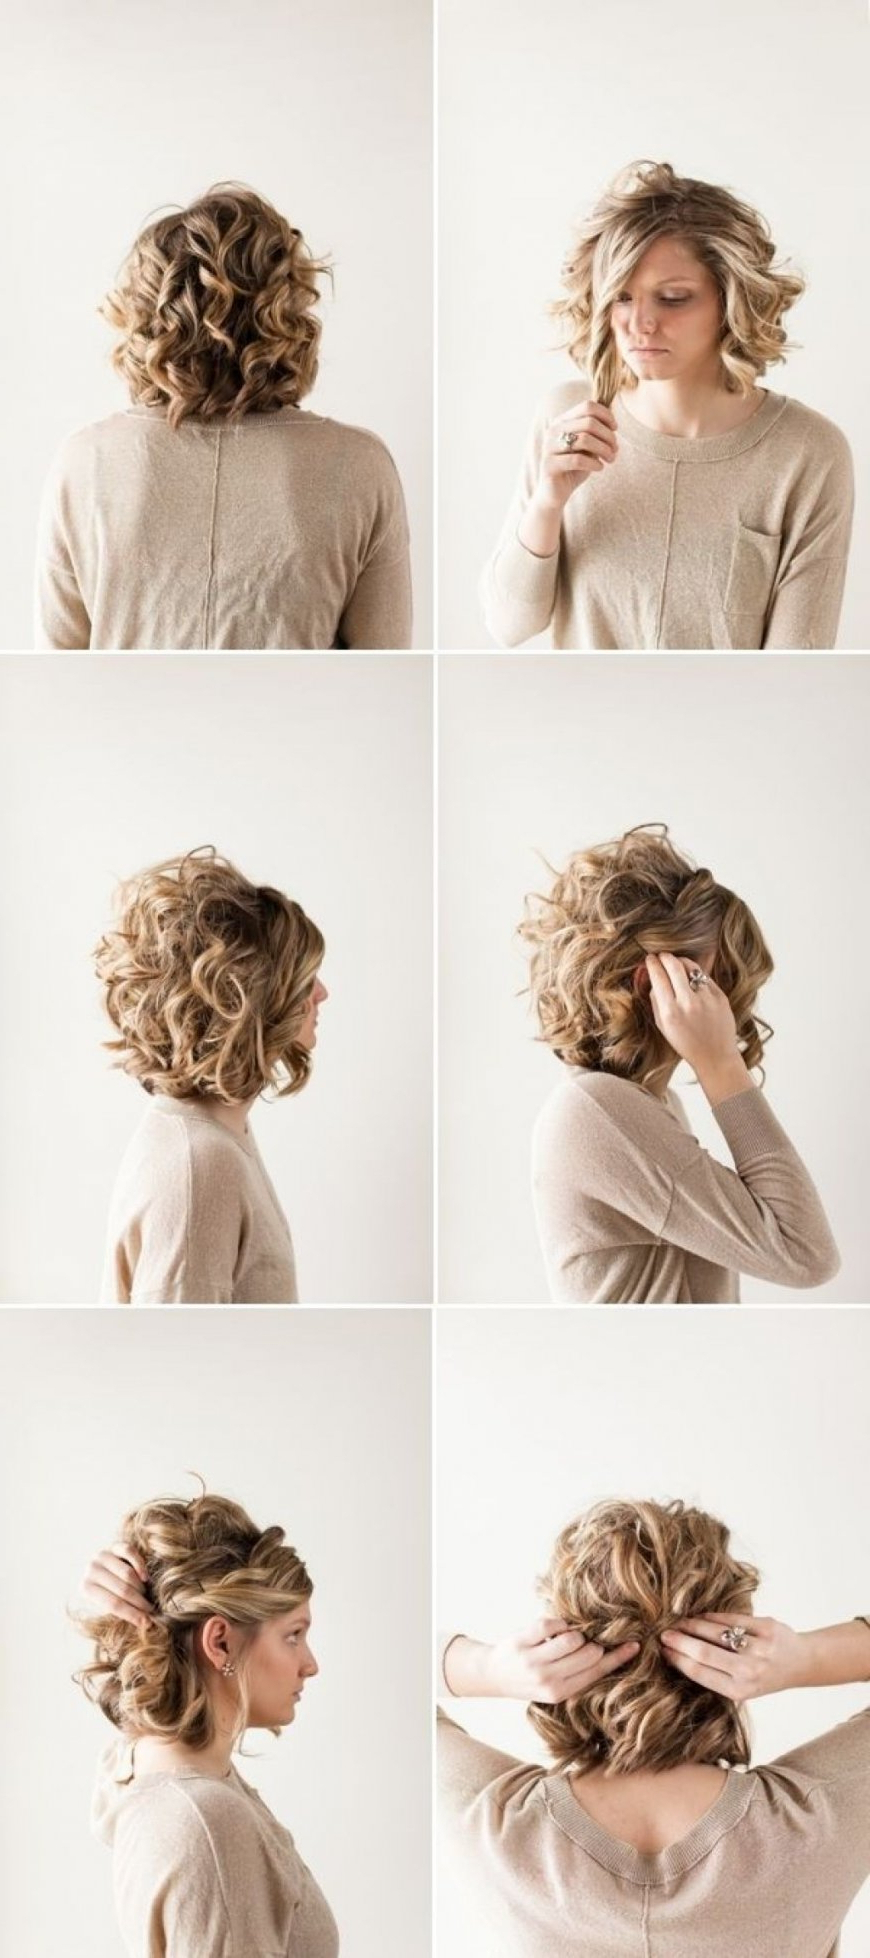 Cute Wedding Hairstyles For Short Hair » Best Hairstyles & Haircuts For Bridal Hairstyles Short Hair (View 4 of 25)